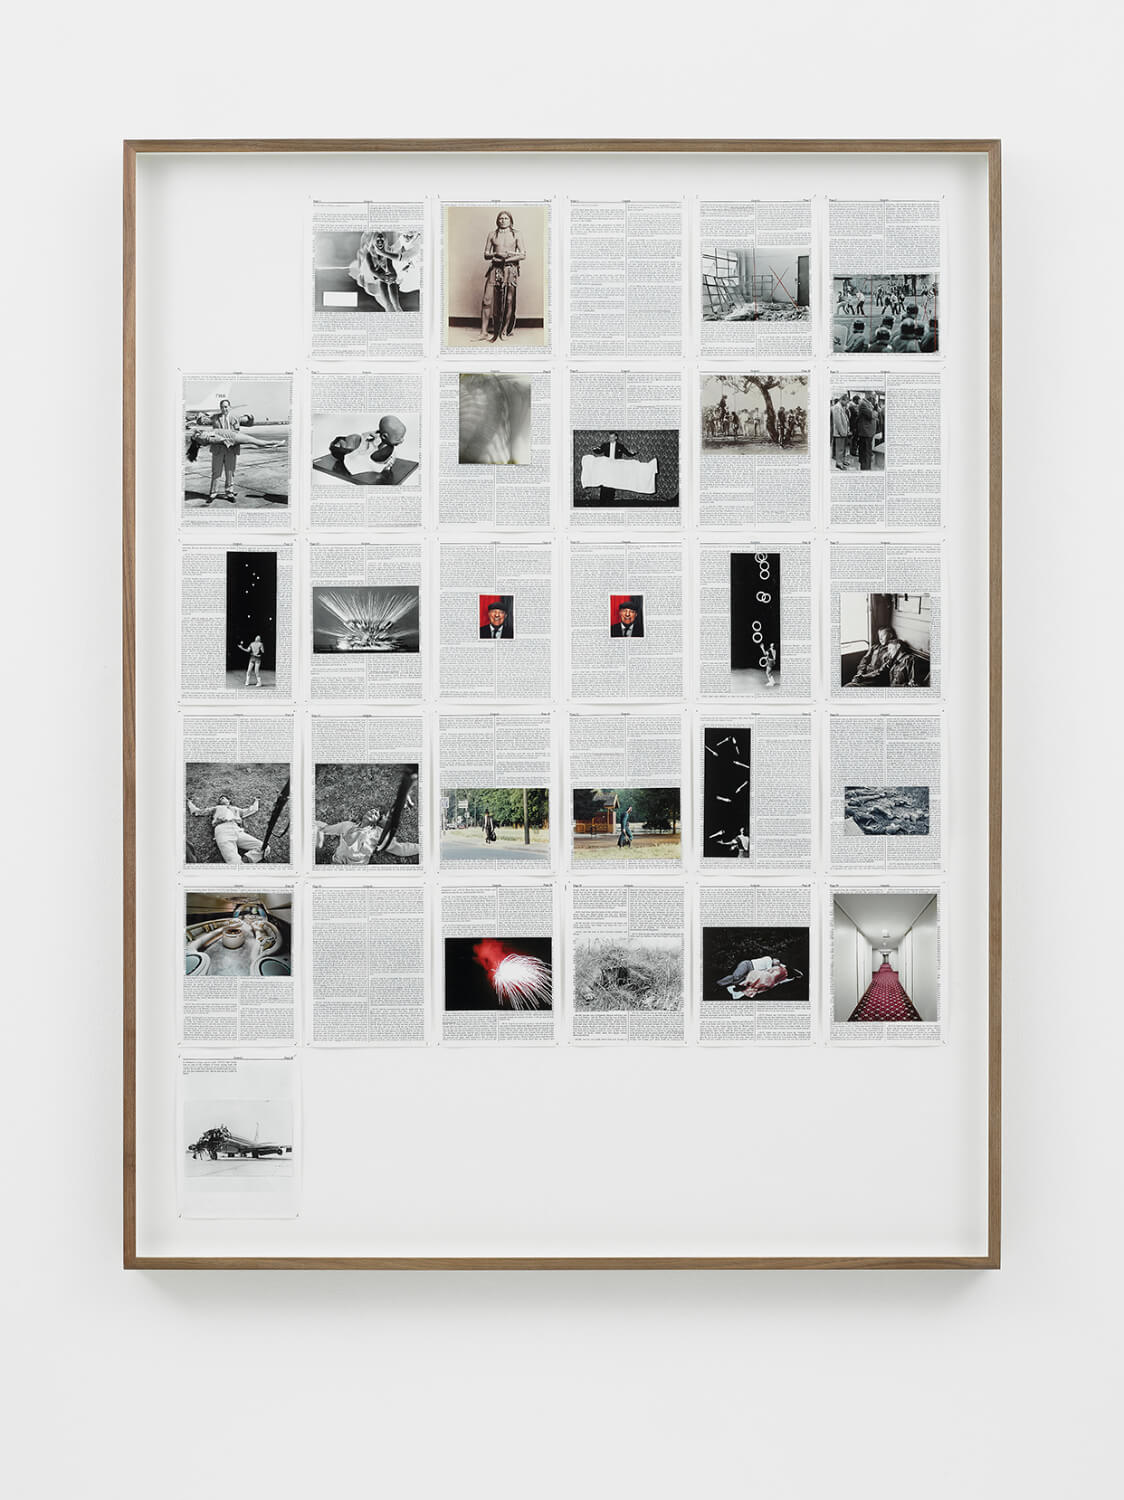 Genesis, Divine Violence, 2013, King James Bible, Hahnemühle print, brass pins, 1447mm x 1123mm, Image courtesy of Lisson Gallery, London